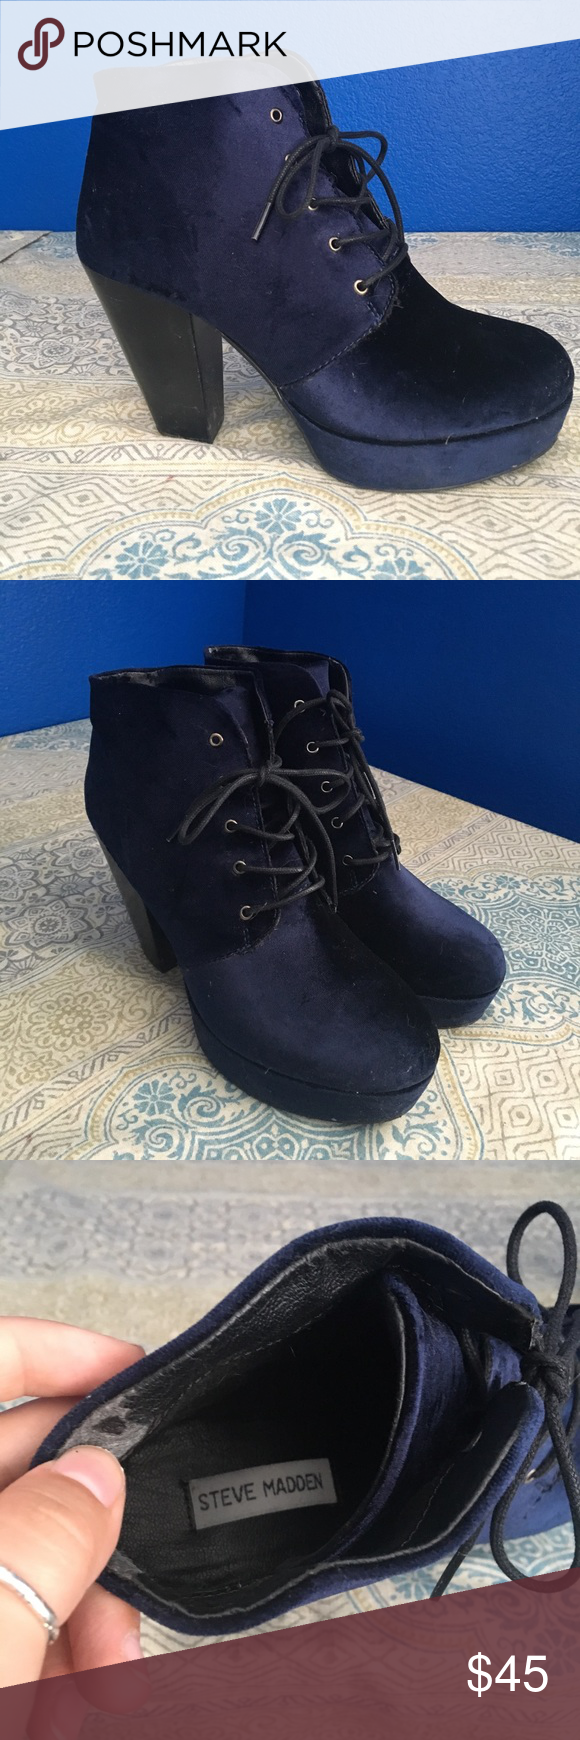 Steve Madden platforms Blue velvet lace up platform booties Steve Madden Shoes Platforms